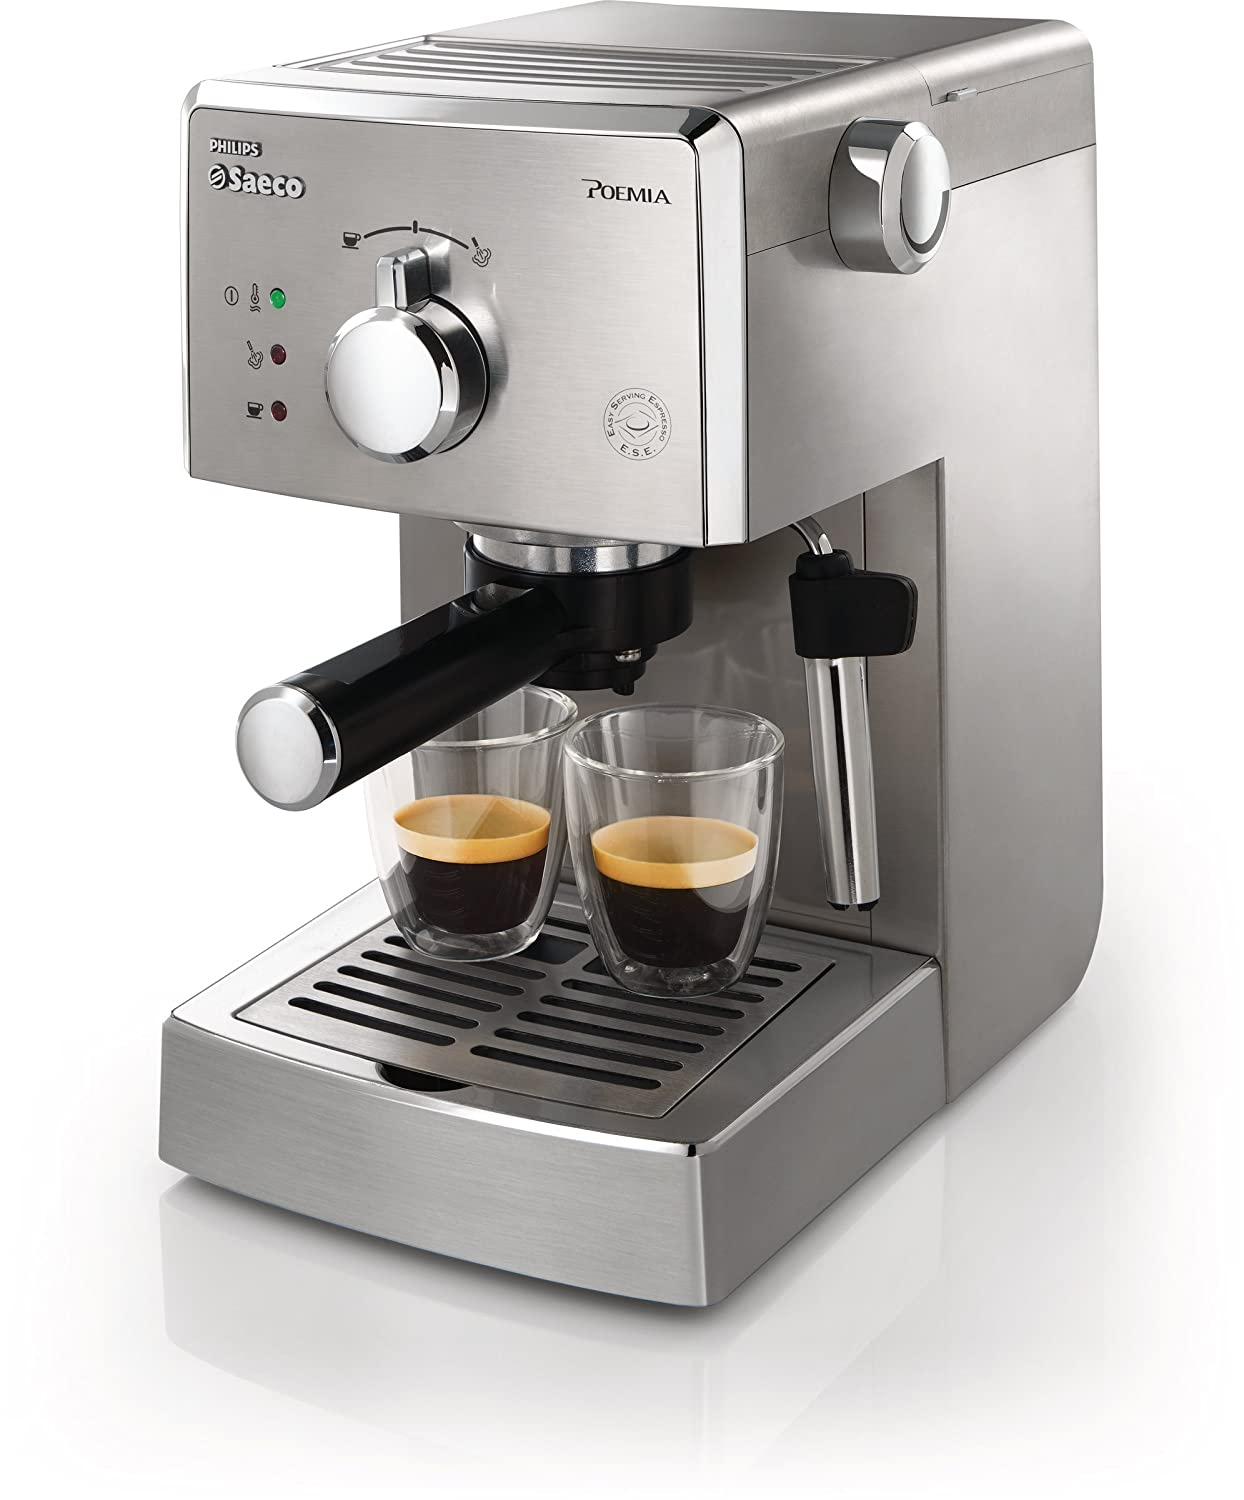 Electronic Saeco Coffee Machine Prices buy philips saeco hd832747 poemia top espresso machine stainless steel online at low prices in india amazon in